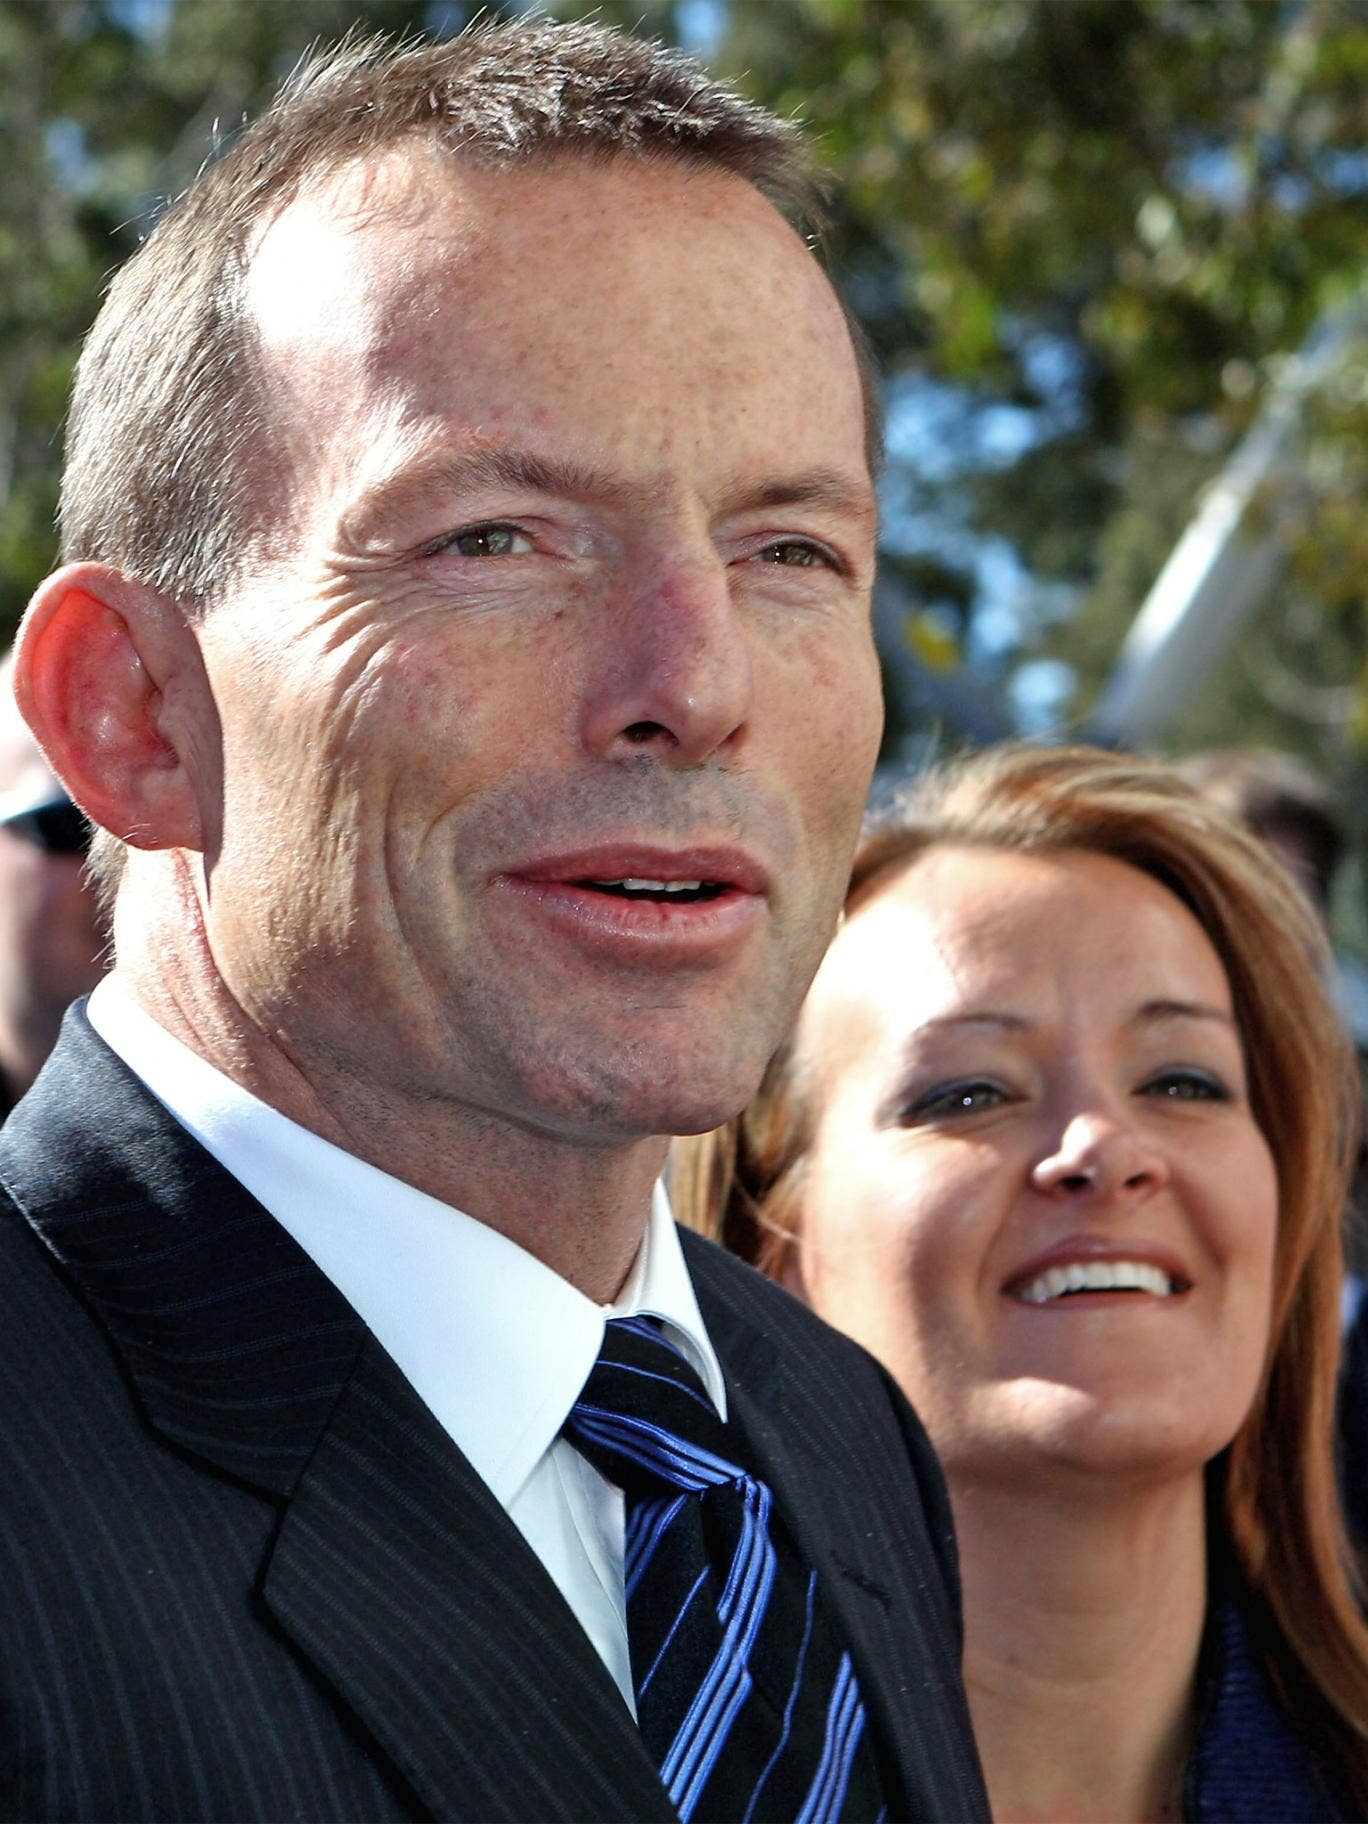 Tony Abbott with his Liberal Party candidate, Fiona Scott